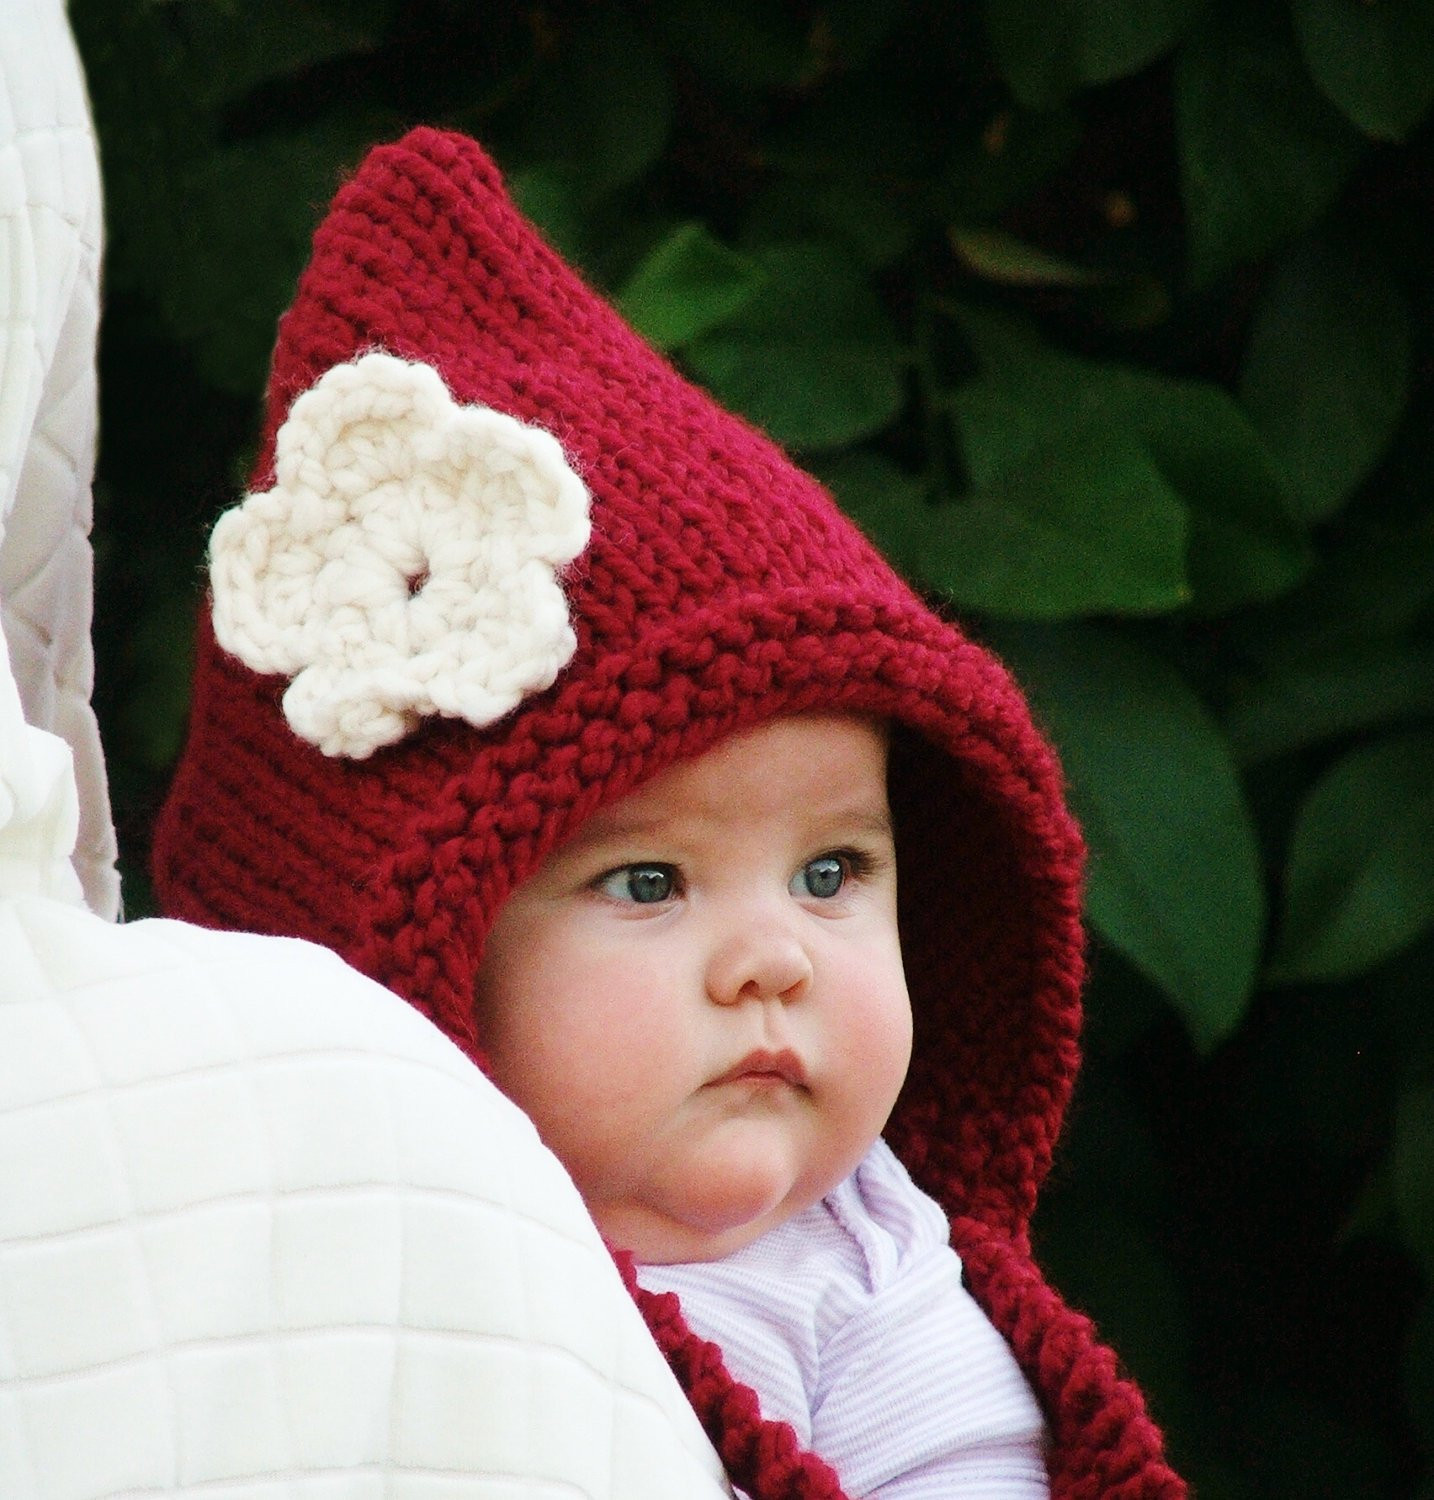 Inspirational Baby Pixie Hat Red Riding Hood Knit Baby Hat Newborn by Infant Knit Hat Of Beautiful 48 Photos Infant Knit Hat